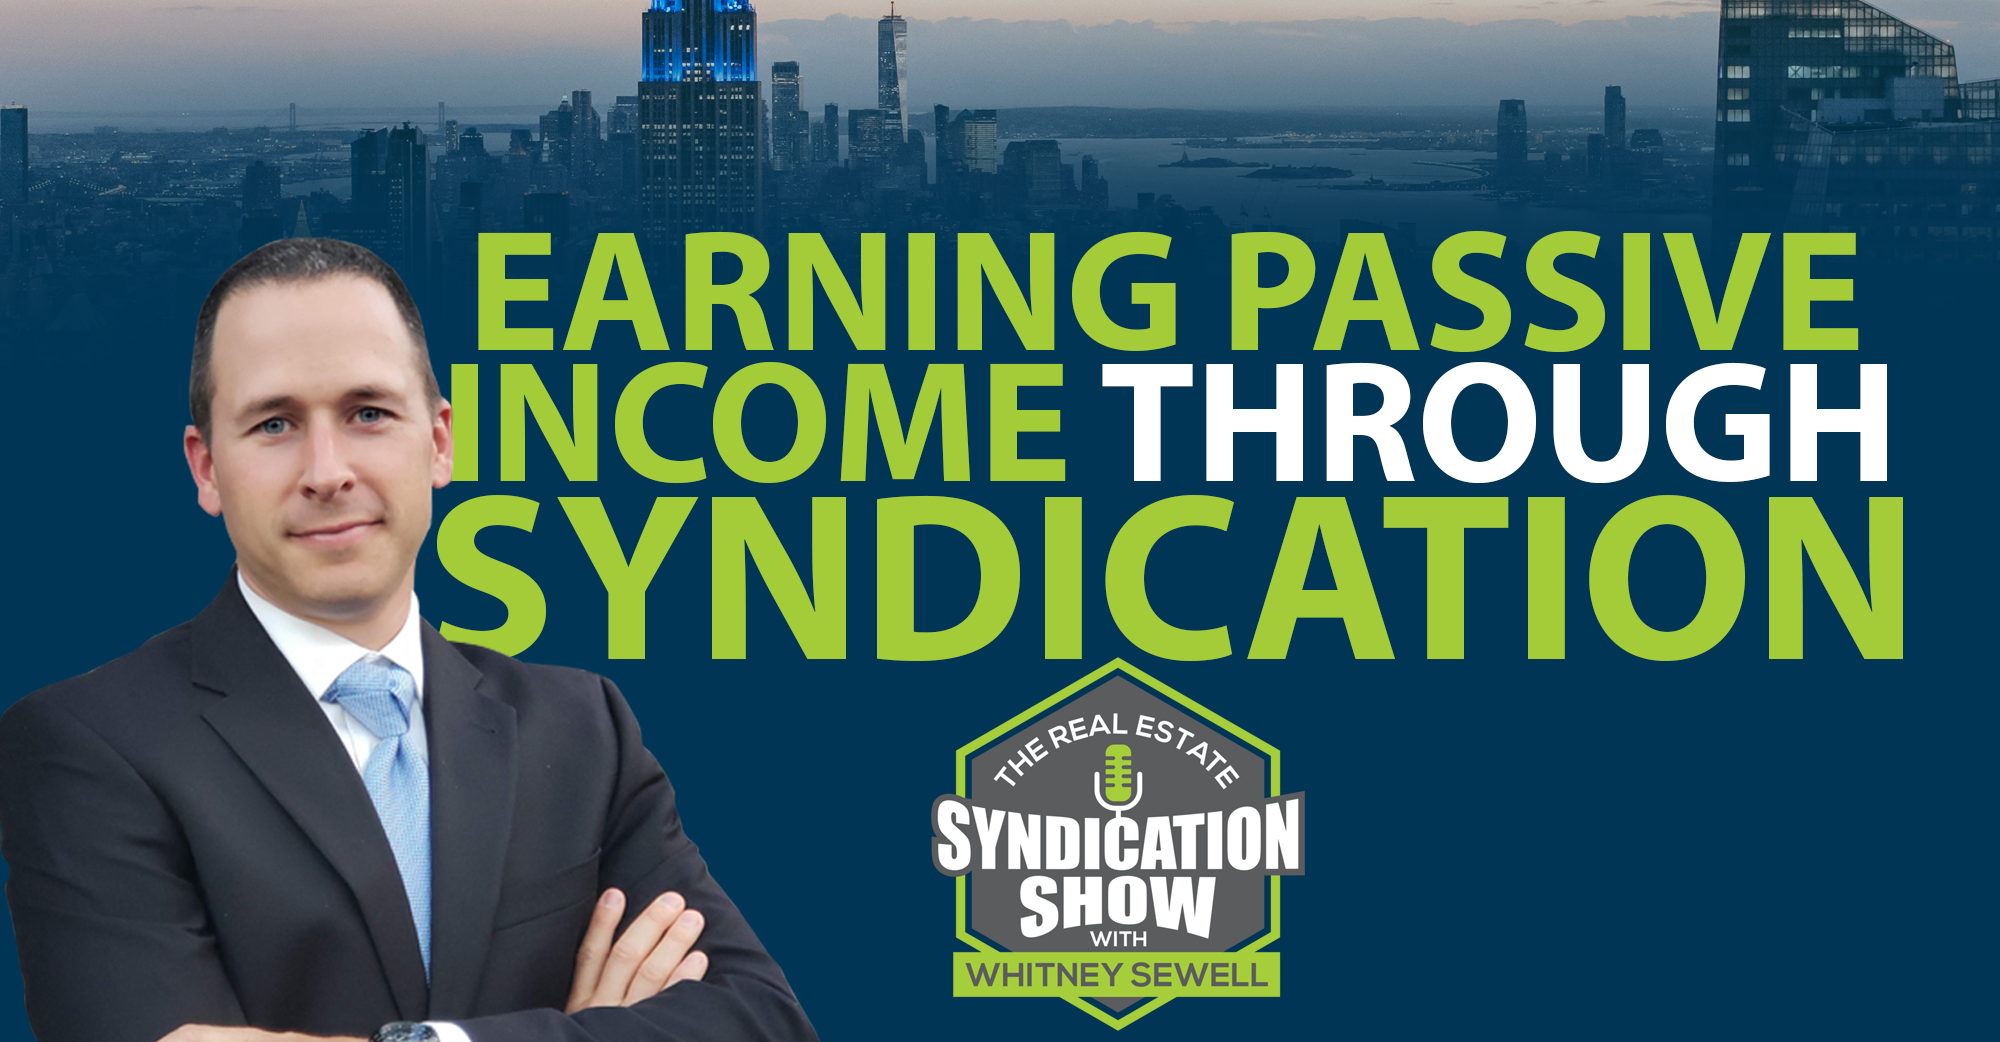 Earning Passive Income Through Syndication